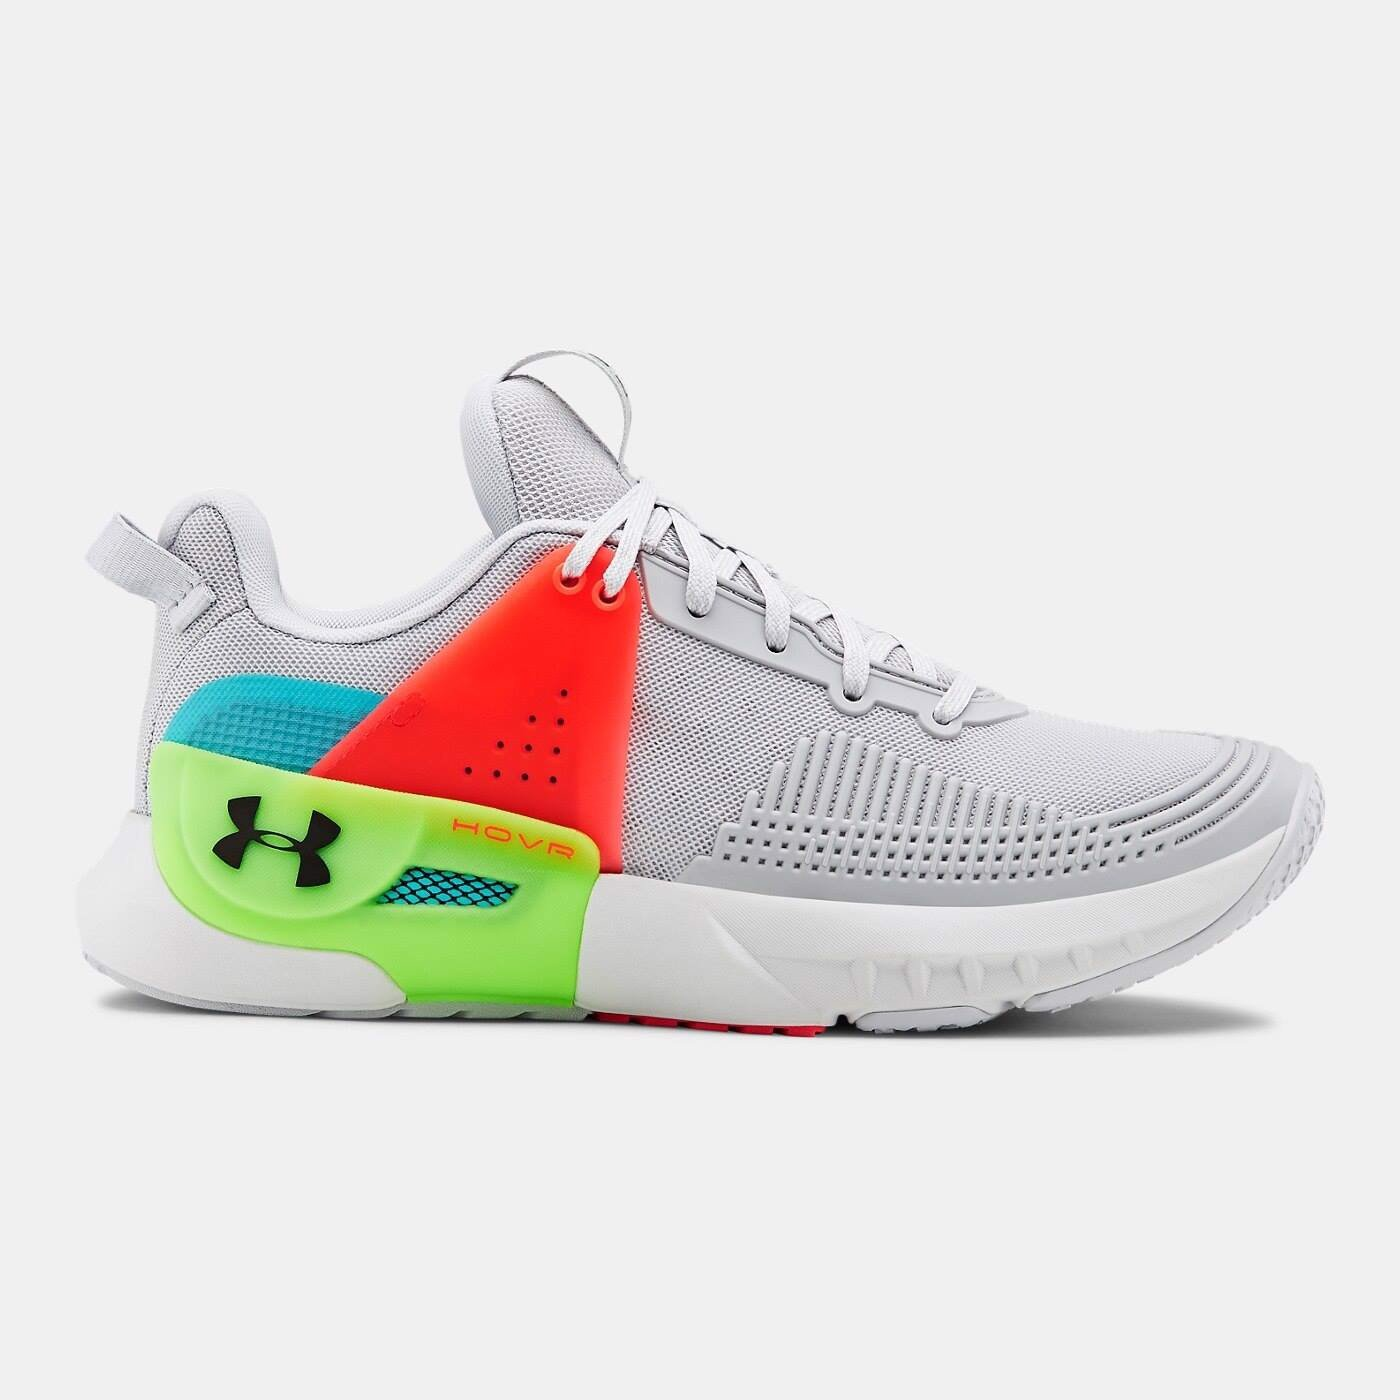 Under Armour HOVR Apex 'Grey/Neon'